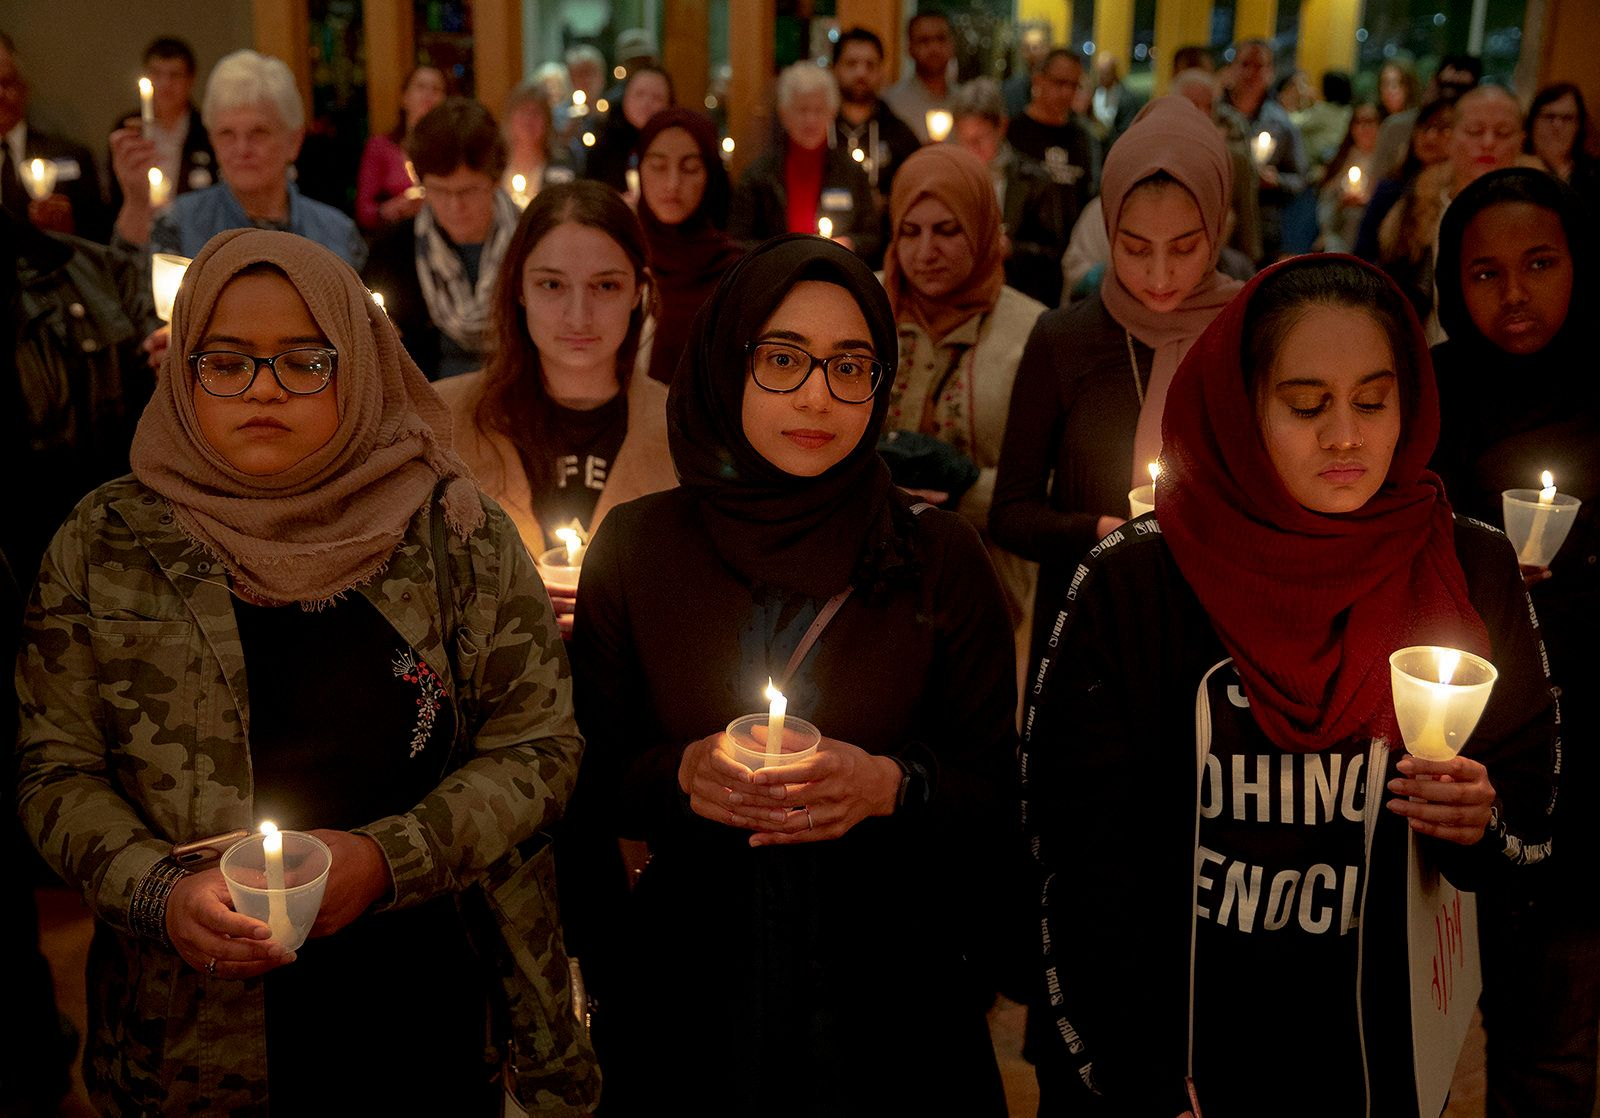 Muslim Activist Collects Stories Of Interfaith Solidarity After New Zealand Massacre